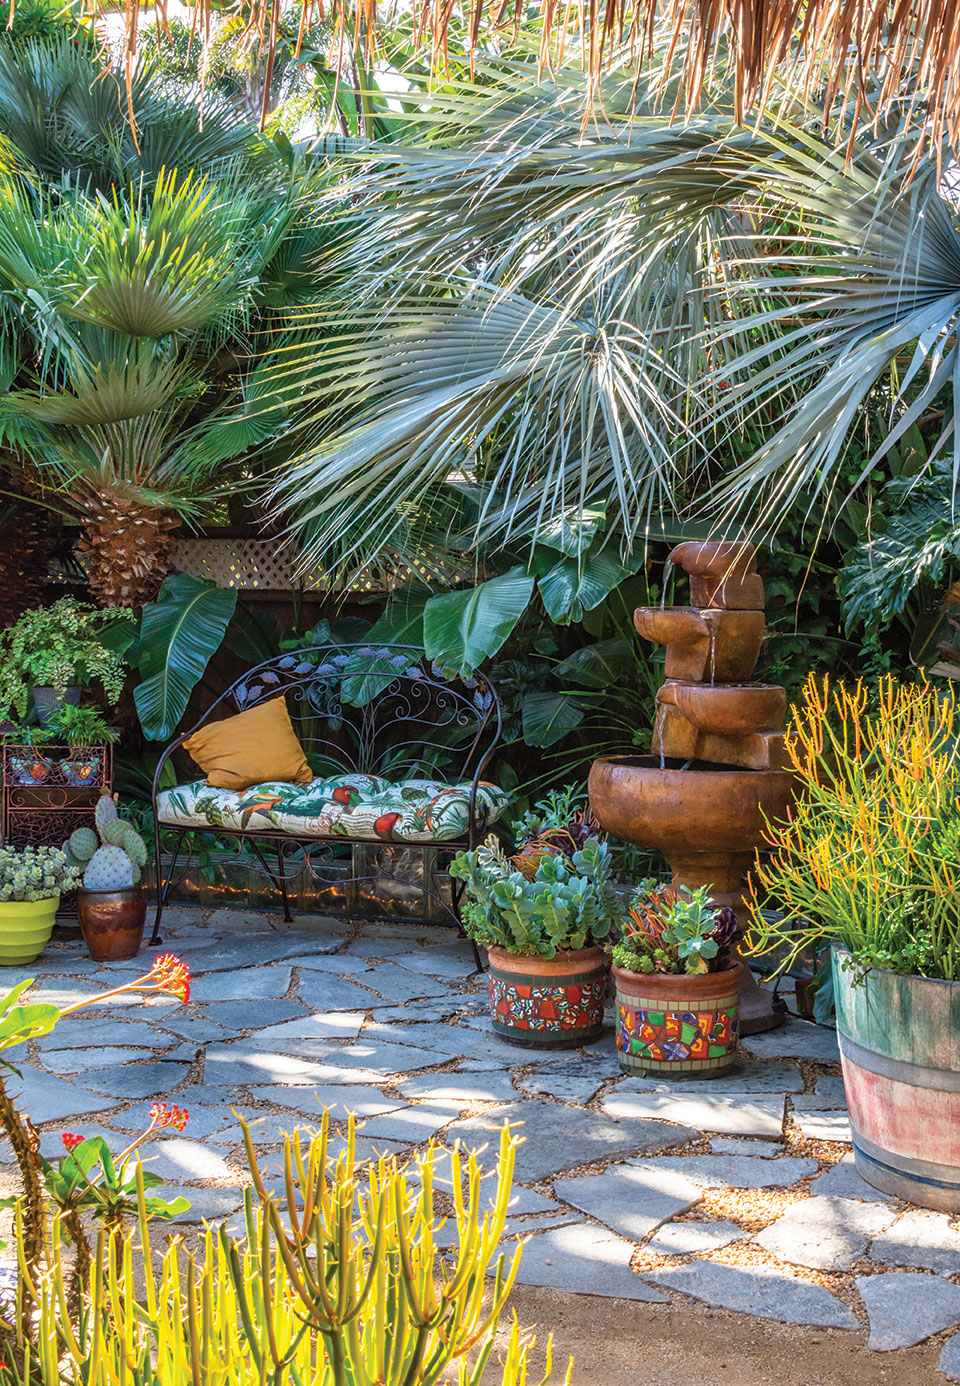 flagstone paver remnants mosaic pots and a bench in an artful and changeable san diego garden